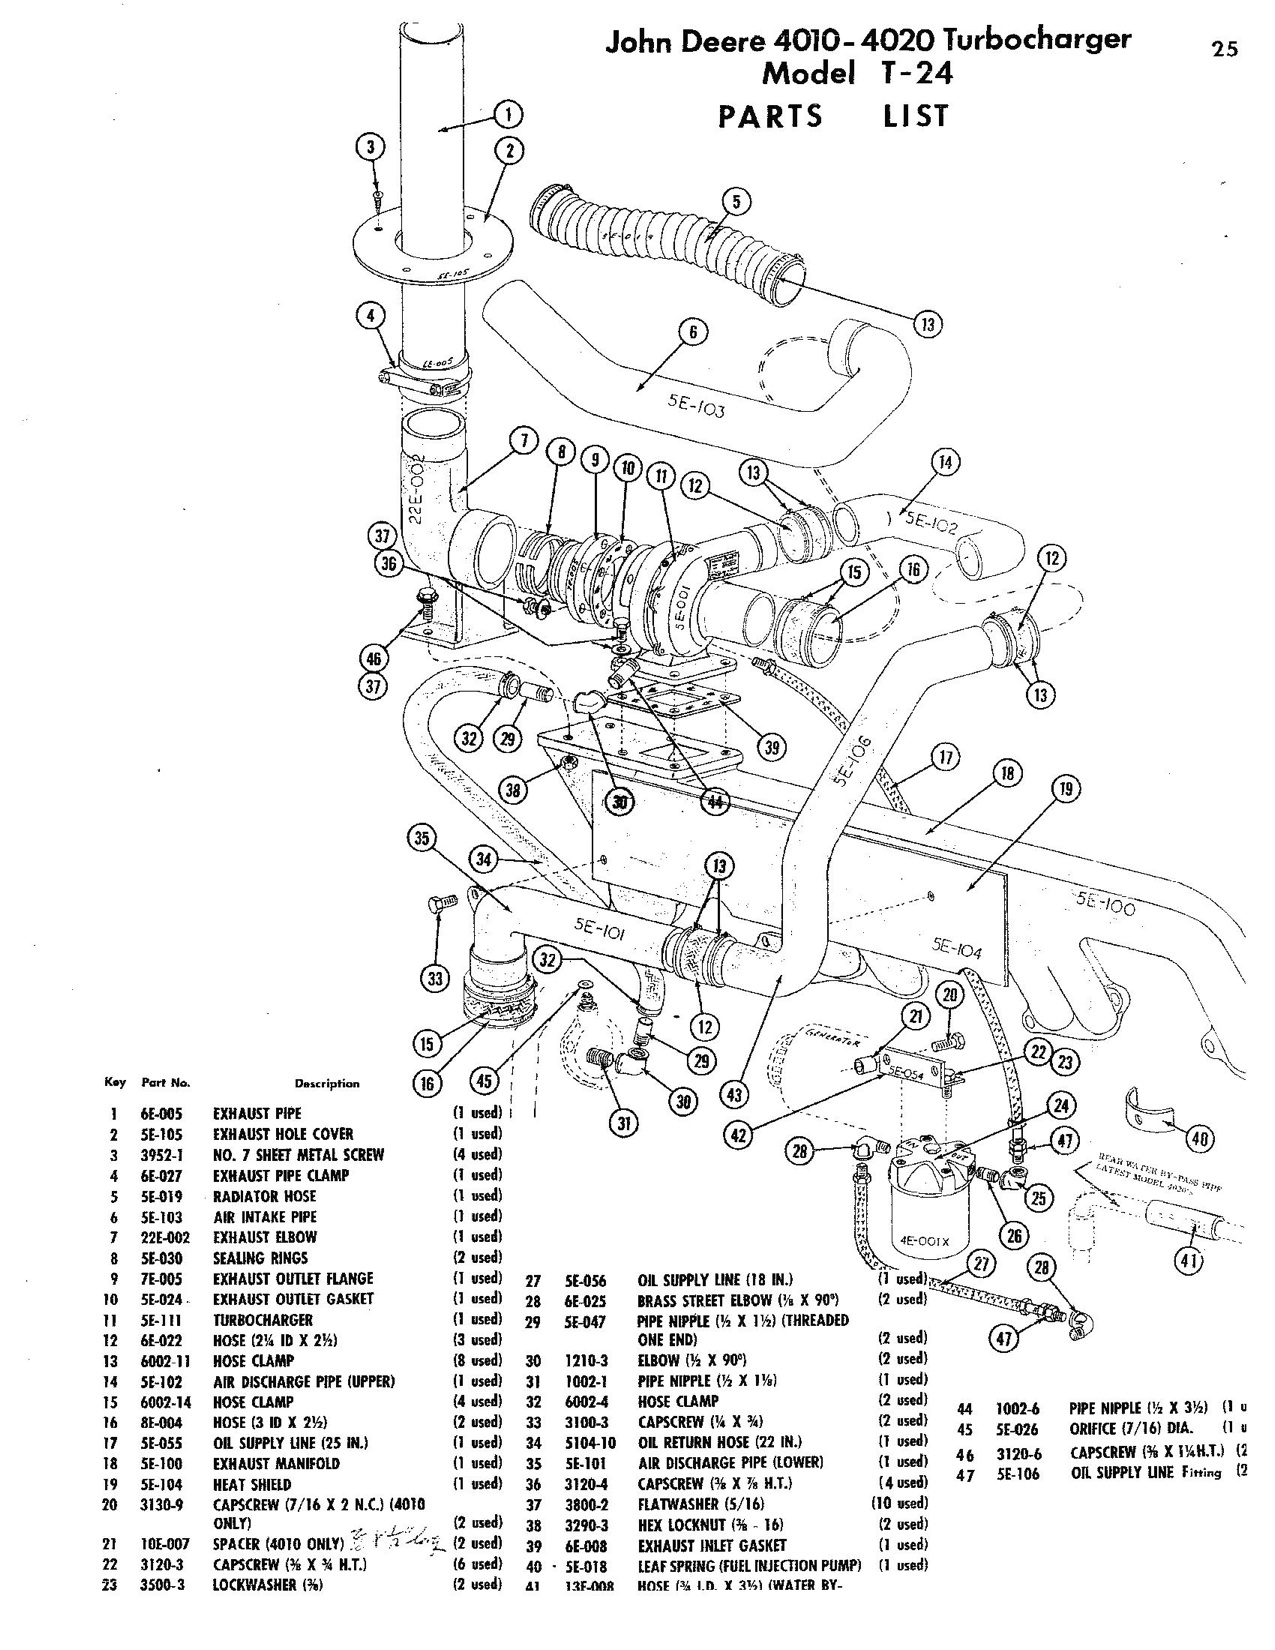 Caterpillar 400 Engine Diagram also Golf Cart Solenoid Wiring Diagram in addition 574 International Tractor Wiring Diagram moreover Stanadyne Injection Pump Wiring also Starter Wiring Diagram For John Deere 4430. on wiring diagram additionally john deere 4020 alternator